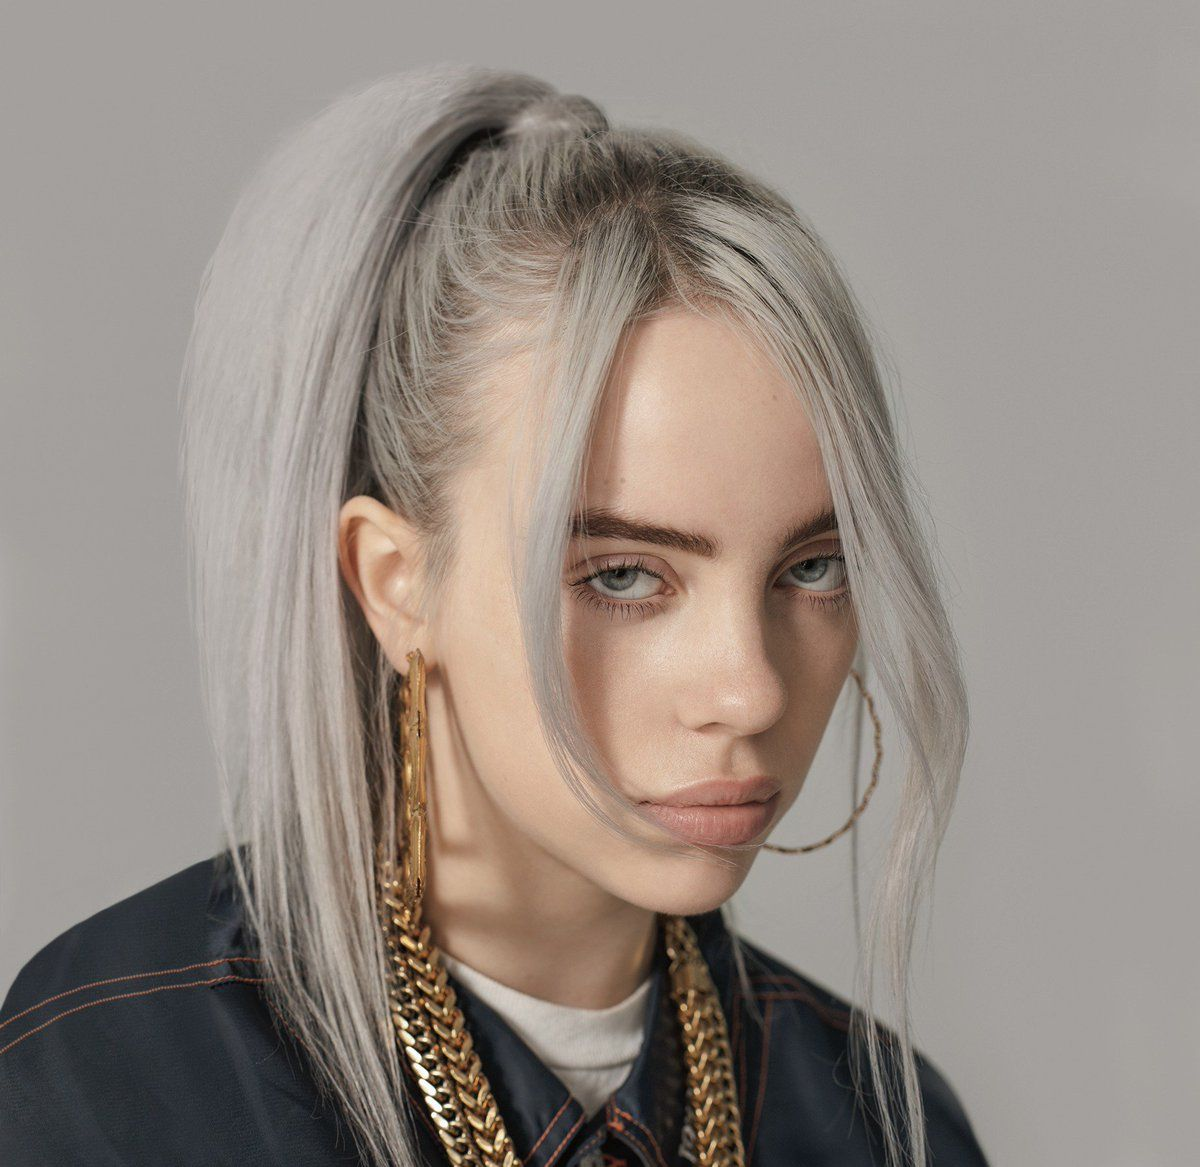 Billie Eilish Con Vestido Google Search In 2019 Billie